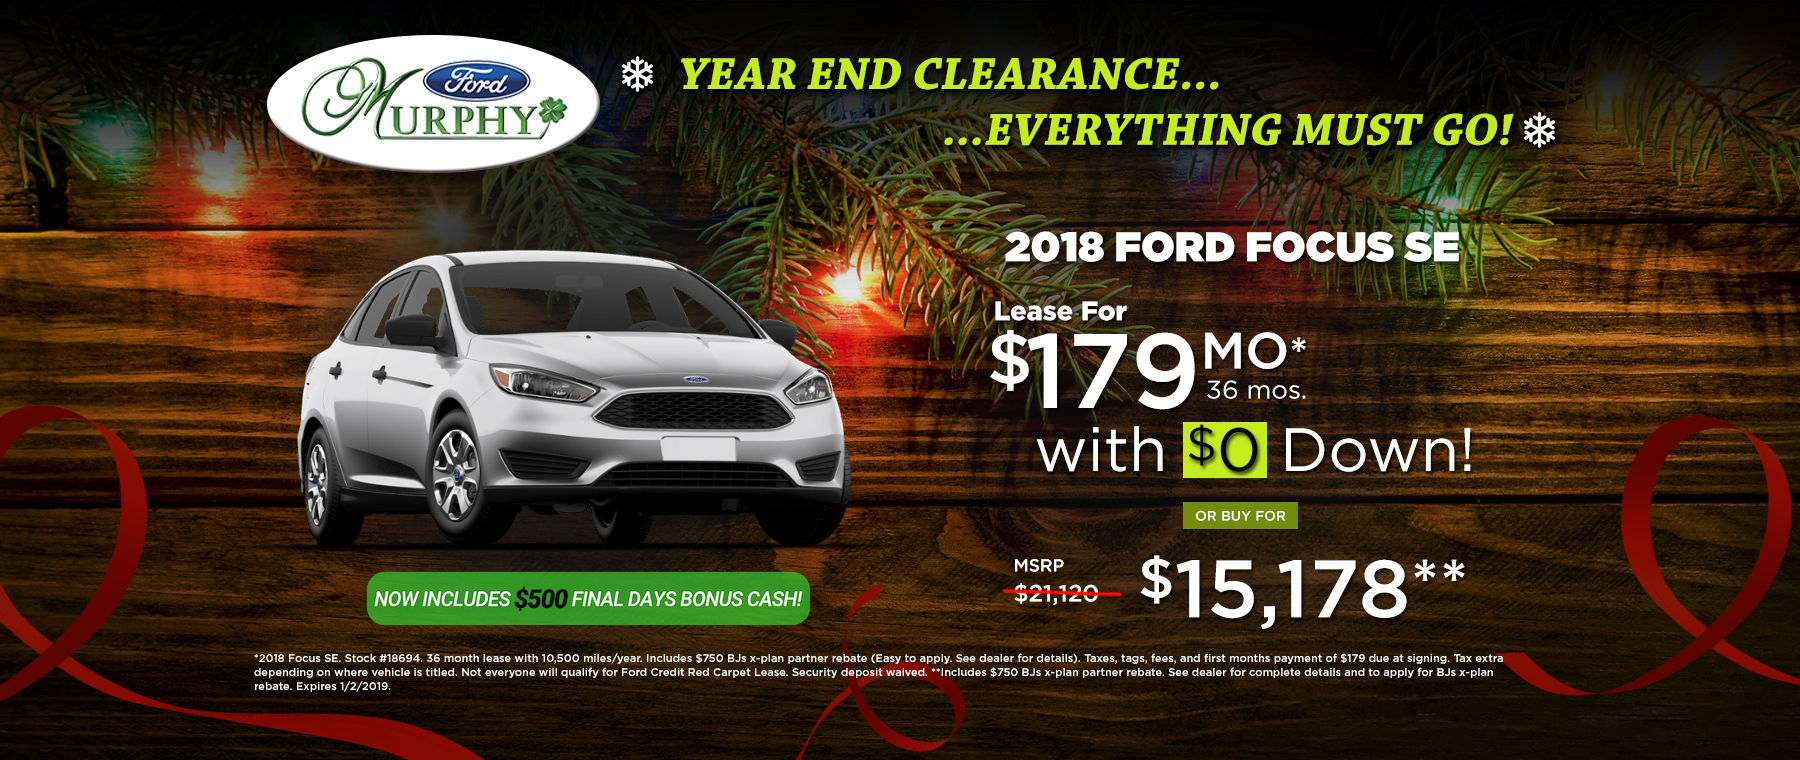 2018 Ford Focus SE December Lease Offer